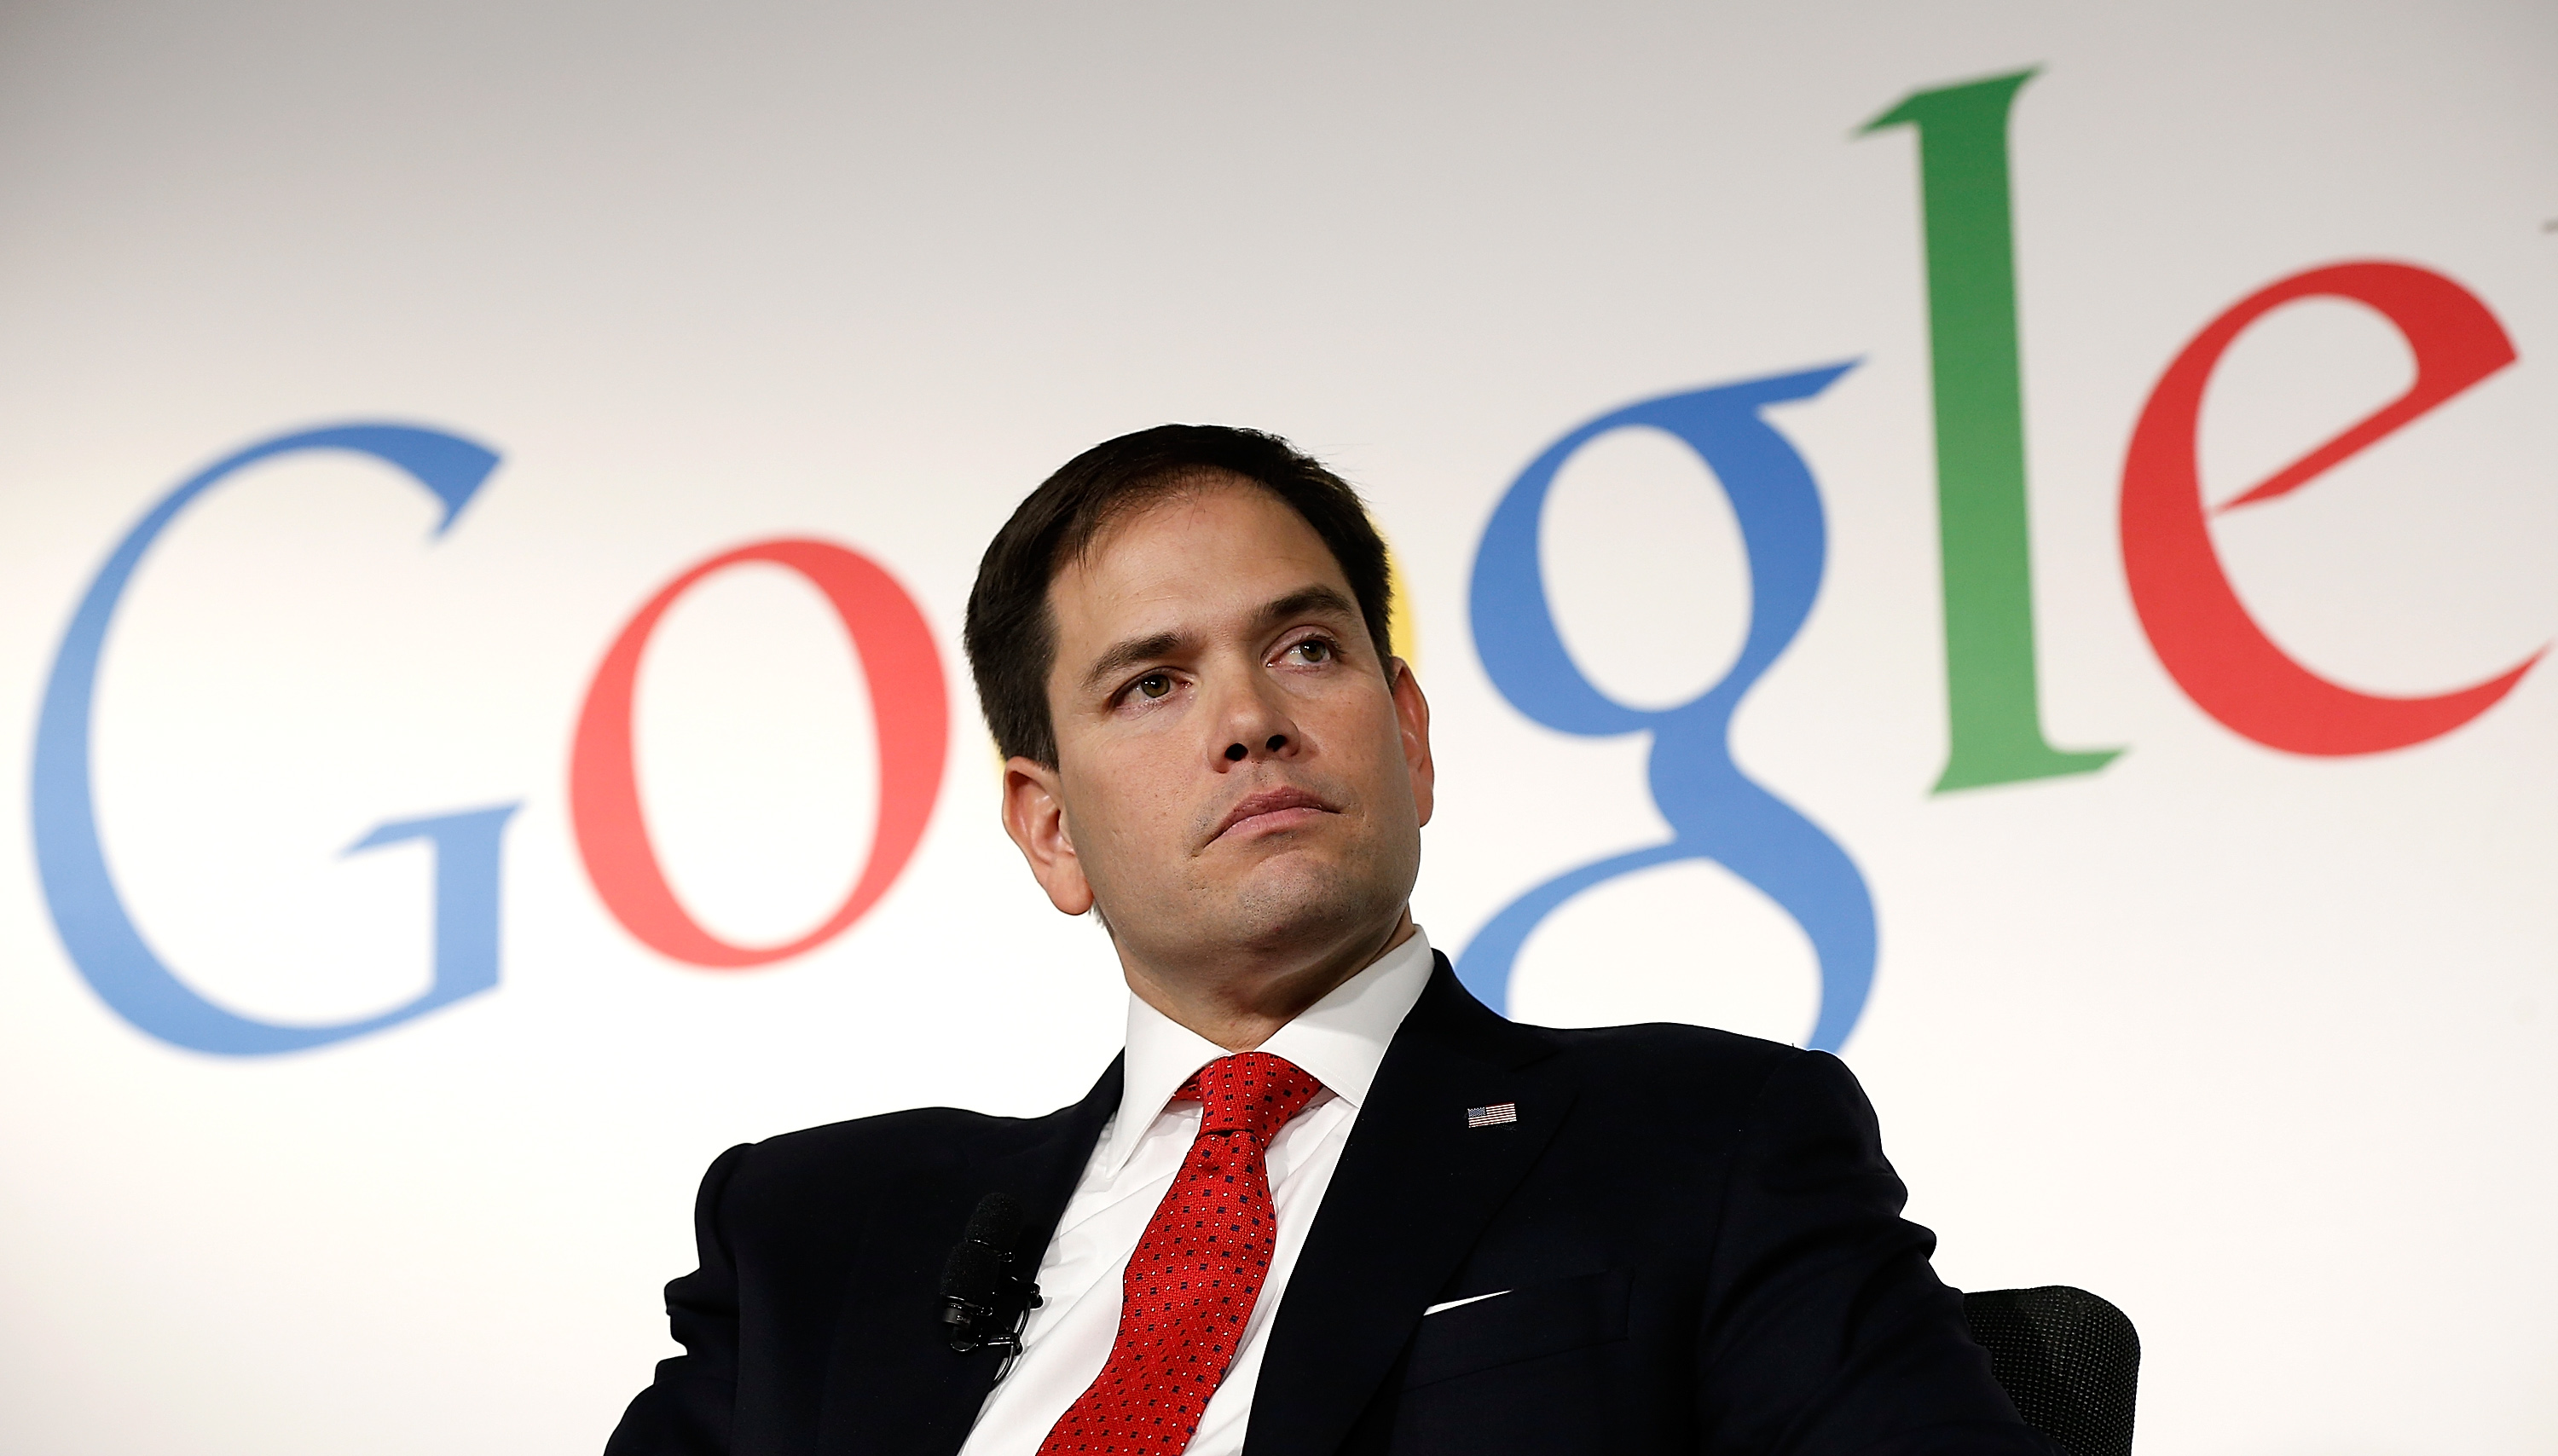 Sen. Marco Rubio, seen here speaking at Google's offices, recently called for further NSA surveillance. (Photo: Getty Images)